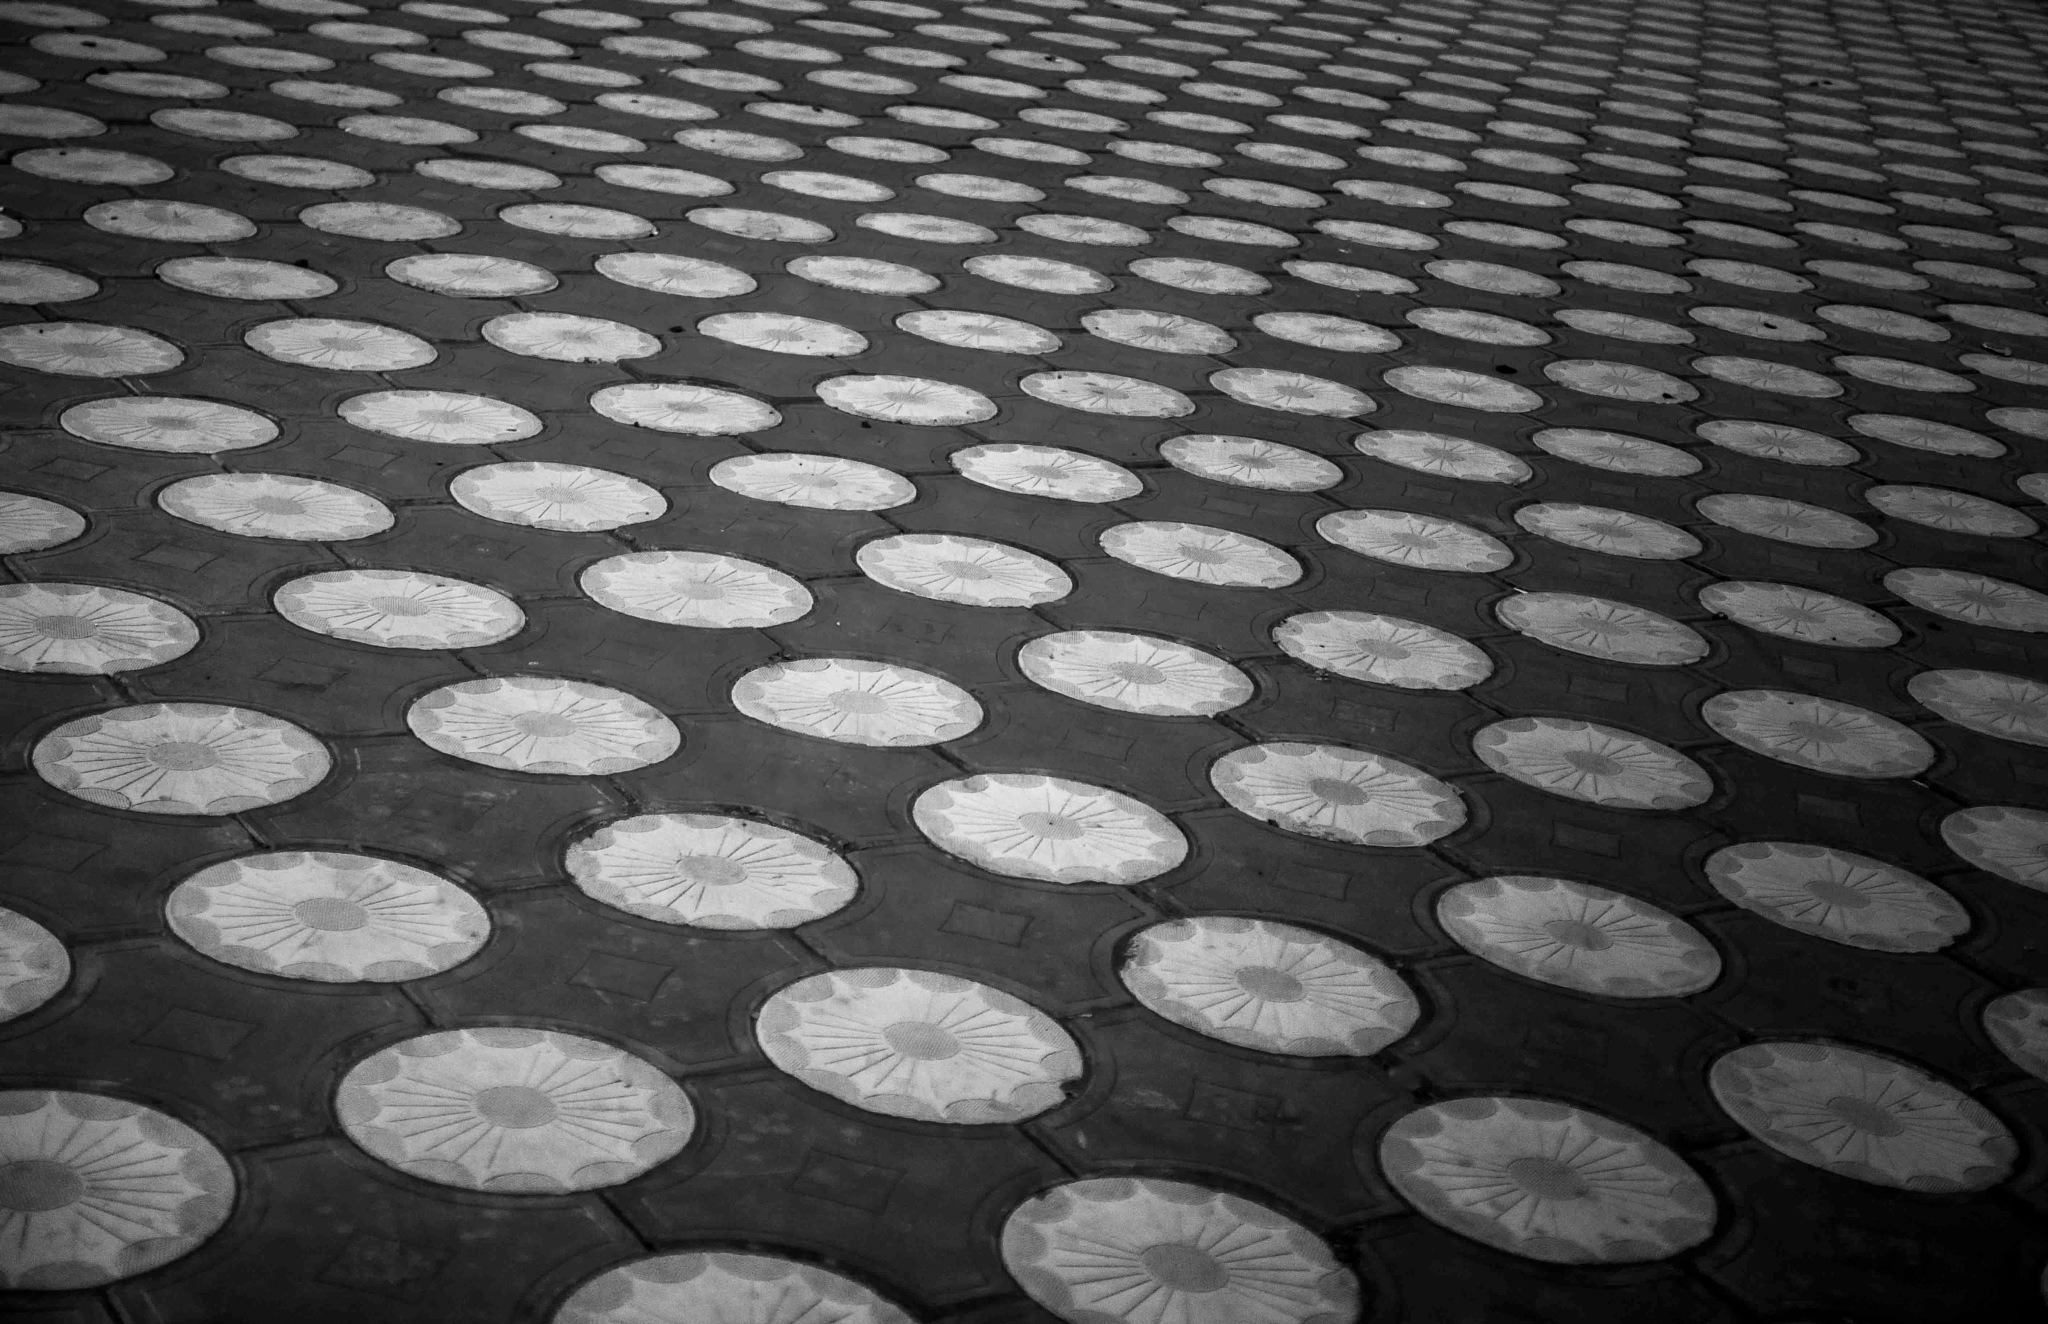 circles by mohamedwwe26